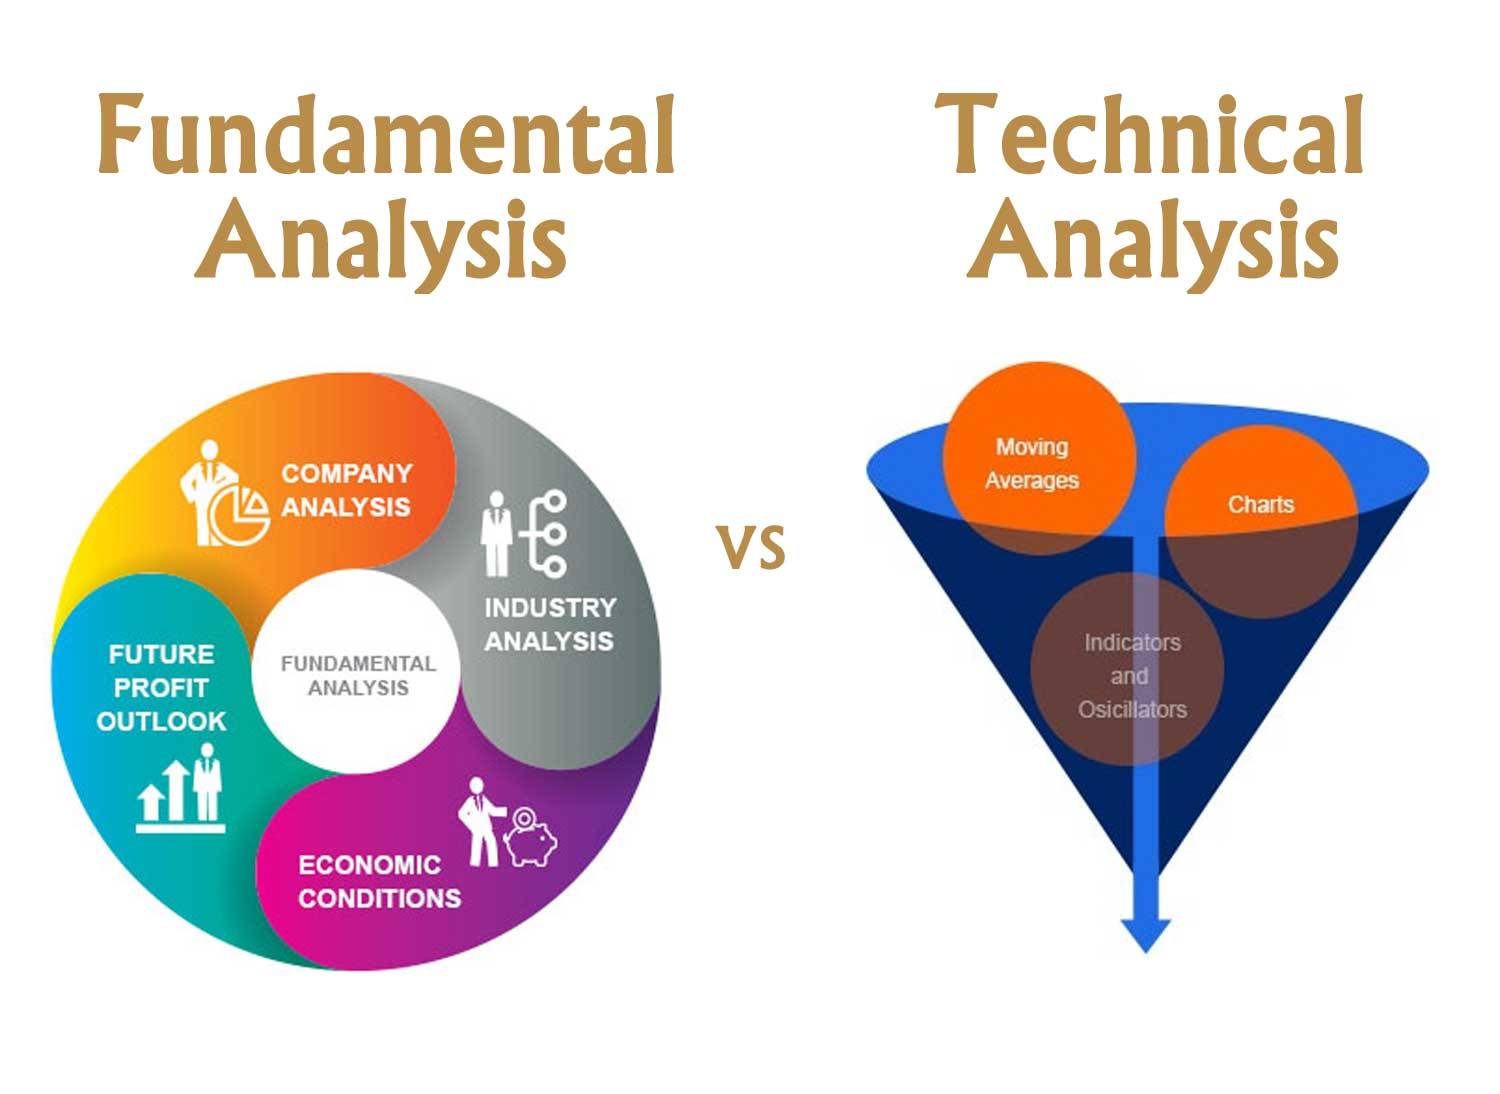 Difference between Fundamental Analysis and Technical